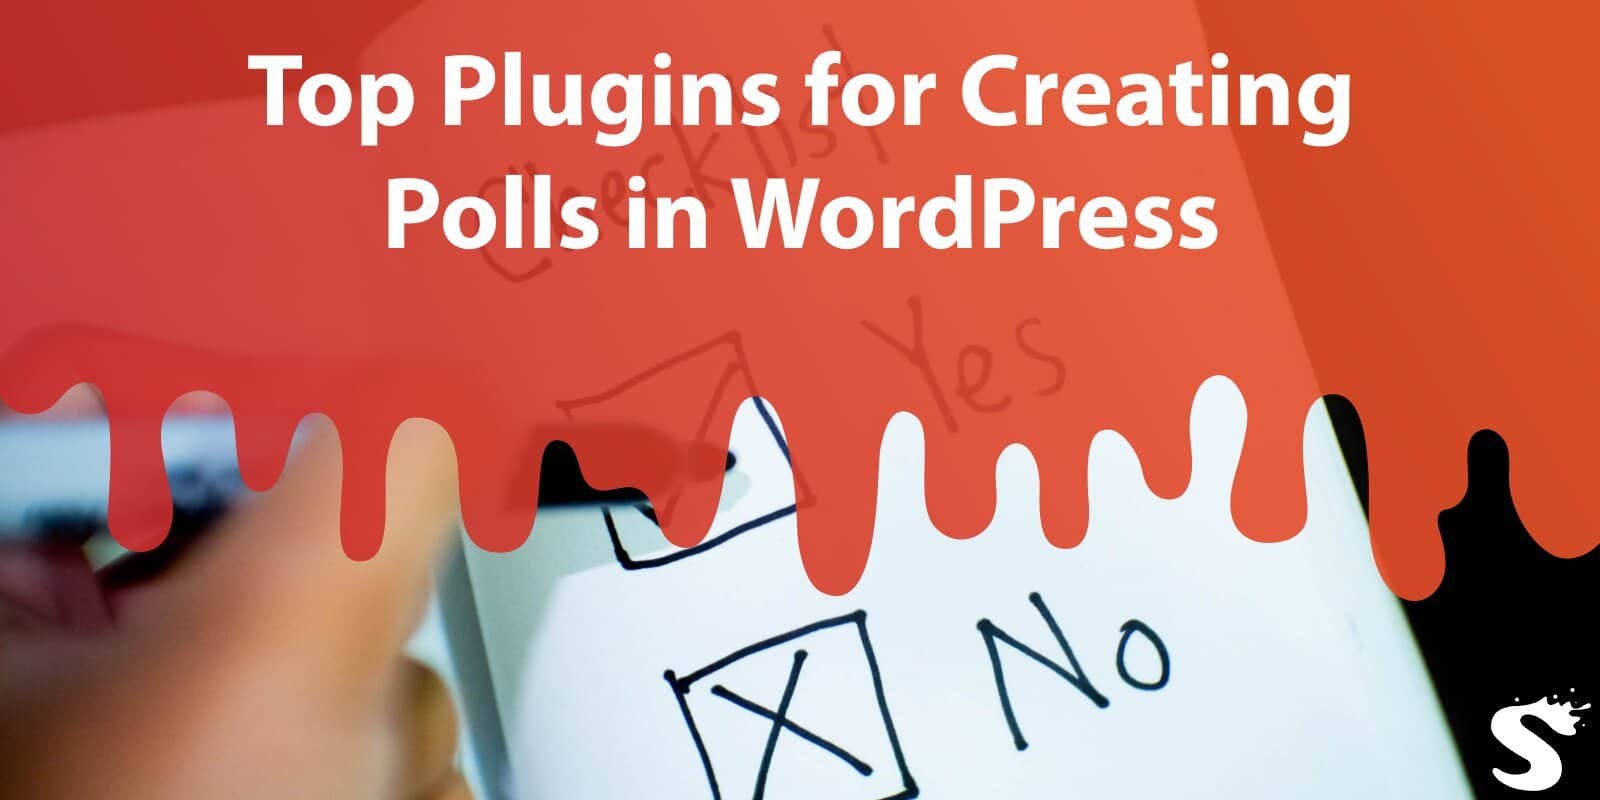 Top Plugins for Creating Polls in WordPress